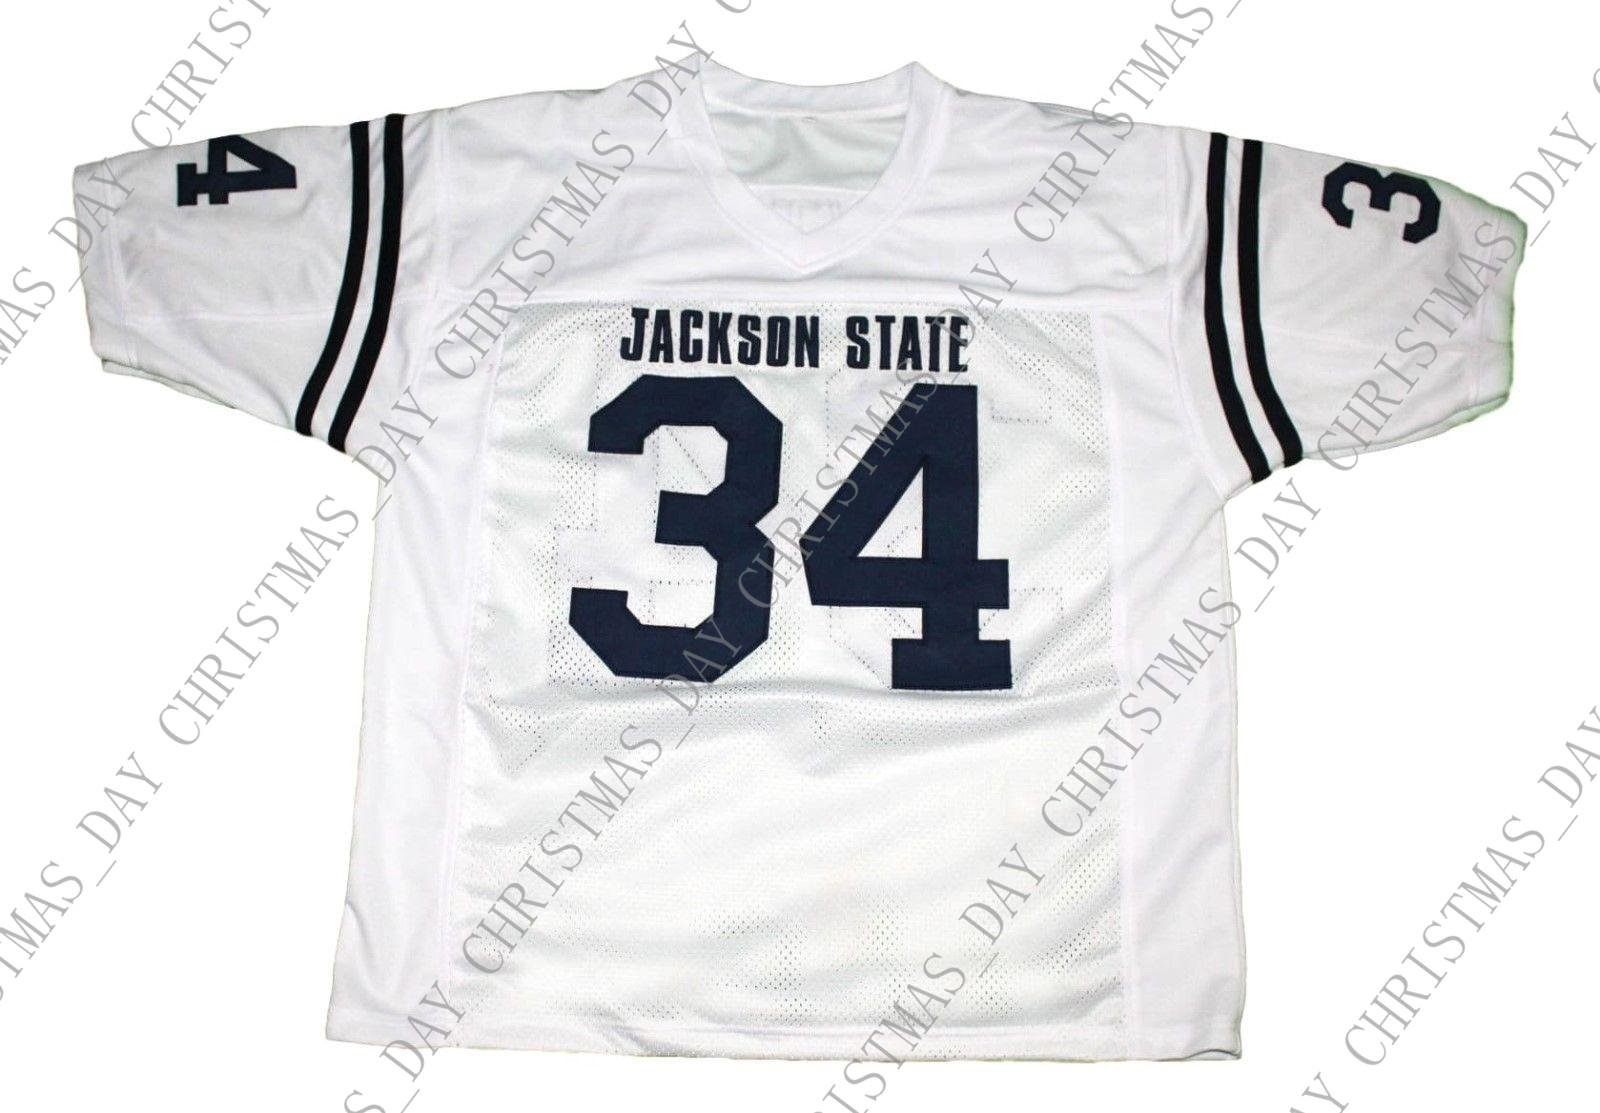 promo code 52750 2a60a wholesale Walter Payton #34 Jackson State New Football Jersey White  Stitched Custom any number name MEN WOMEN YOUTH Football JERSEY